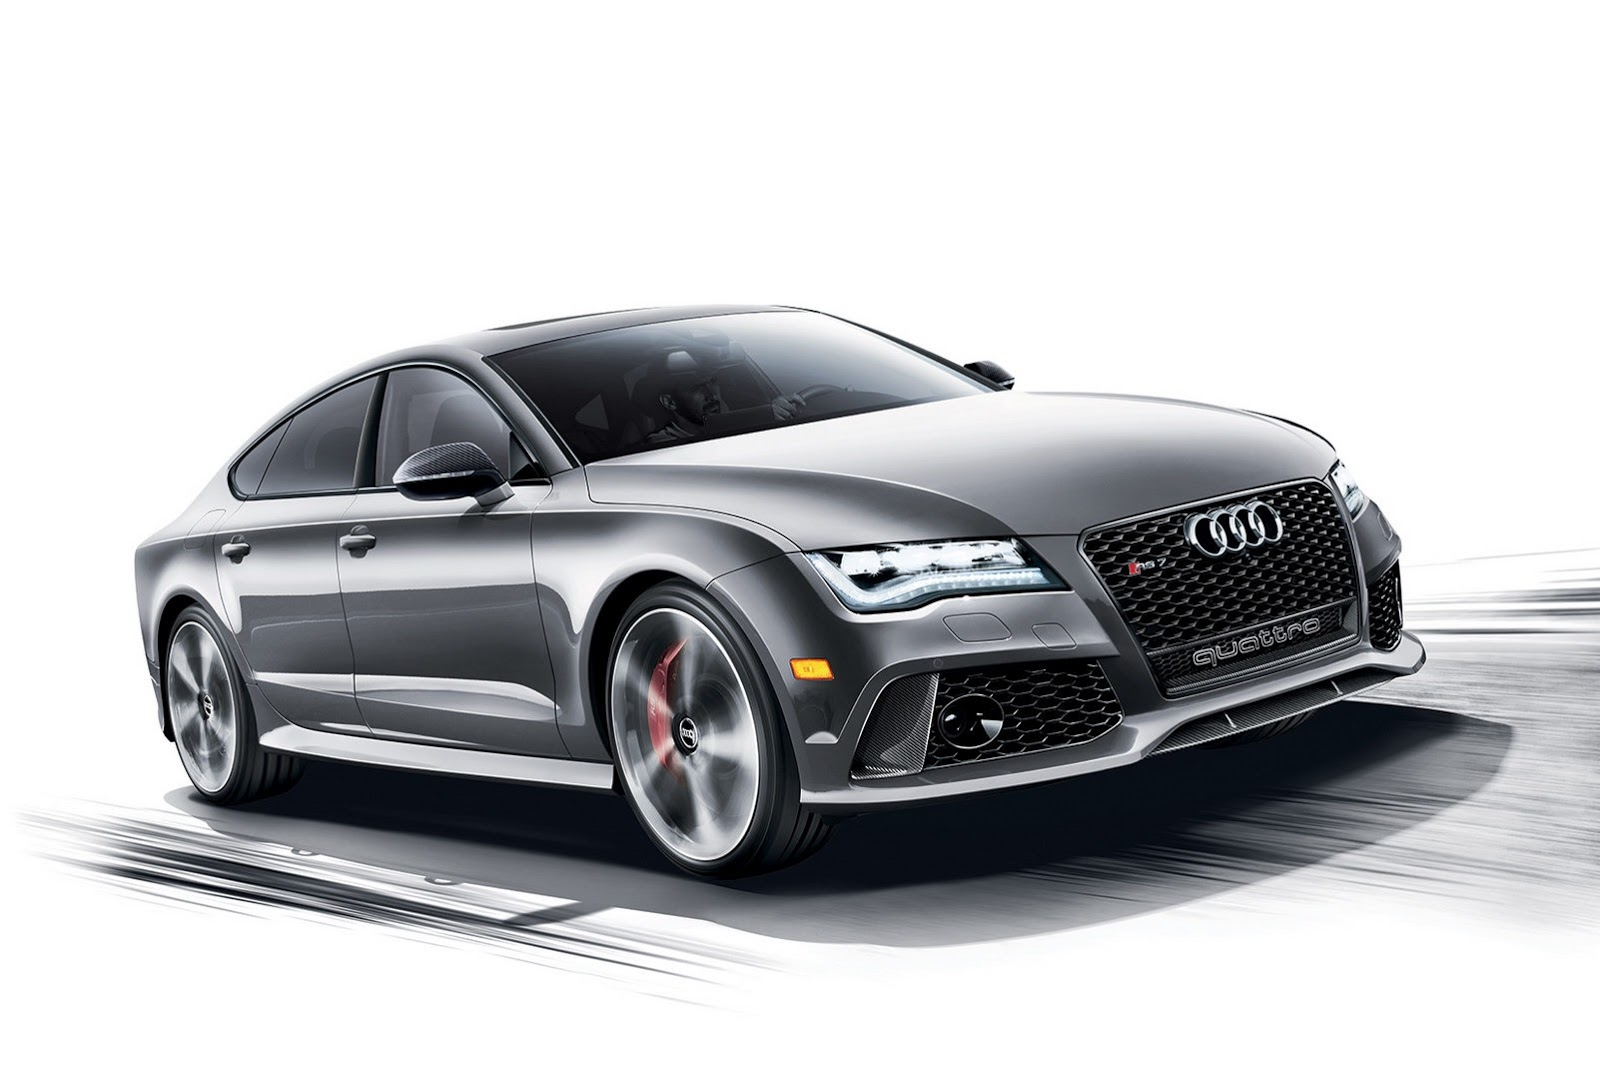 2014 - [Audi] RS7 - Page 2 Audi-RS7-Exclusive-Dynamic-1%25255B2%25255D